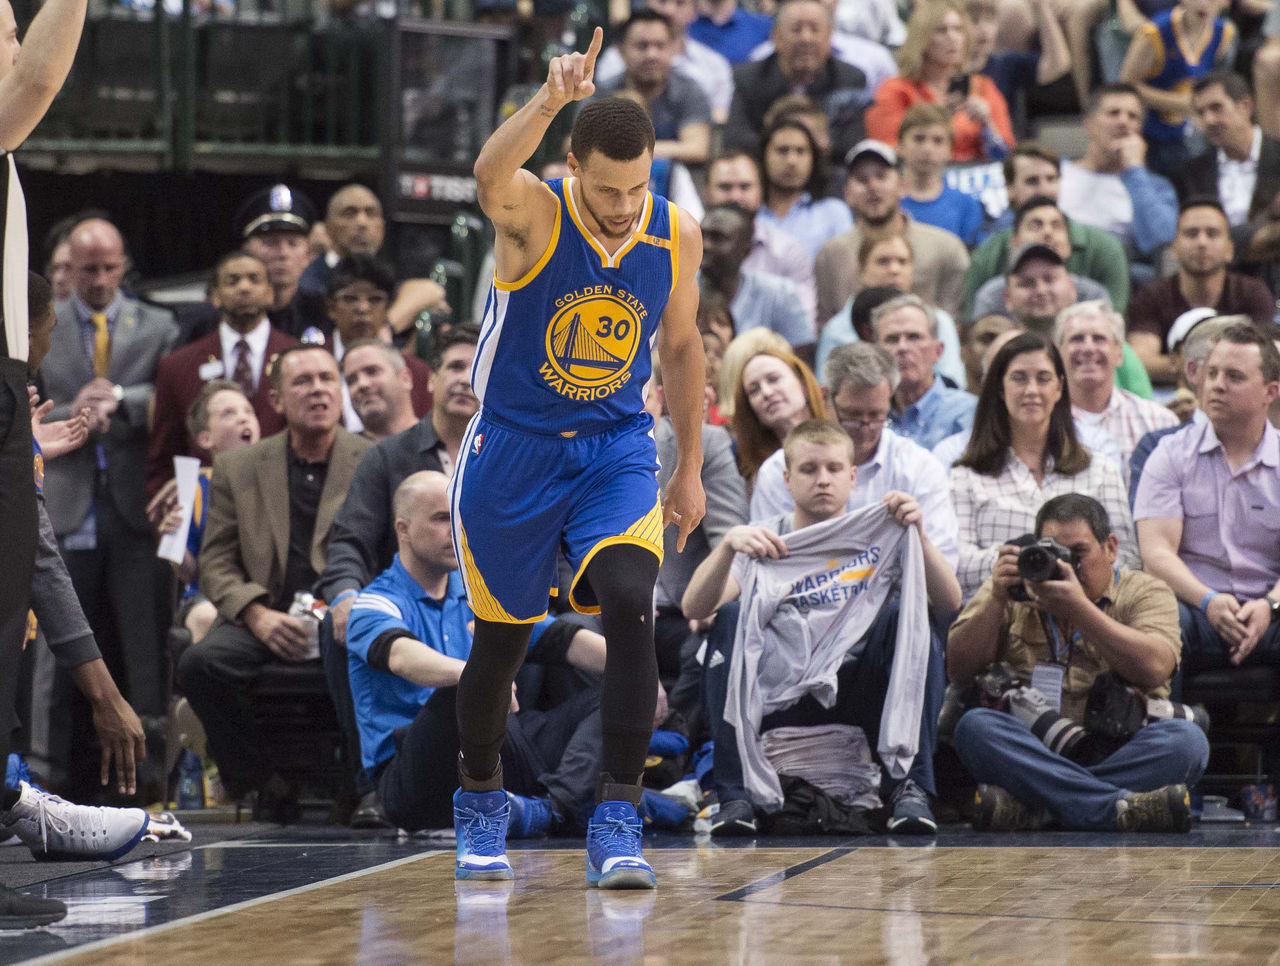 Cropped 2017 03 22t015612z 820823492 nocid rtrmadp 3 nba golden state warriors at dallas mavericks